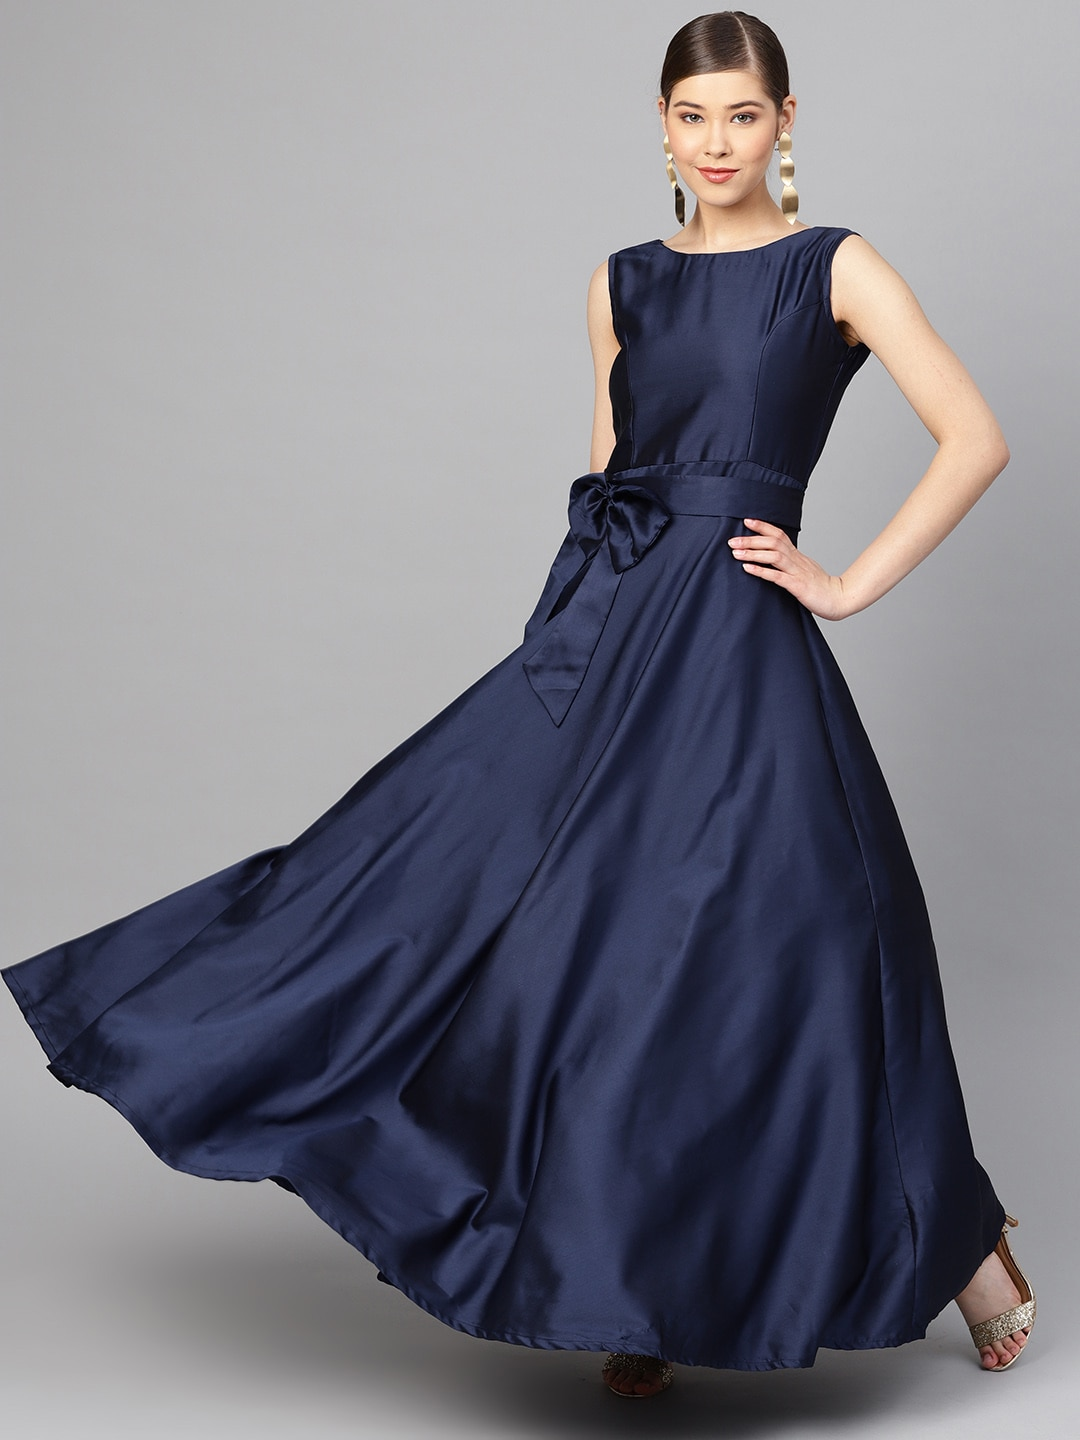 76a96cf48dc58 Maxi Apparel - Buy Maxi Apparel online in India